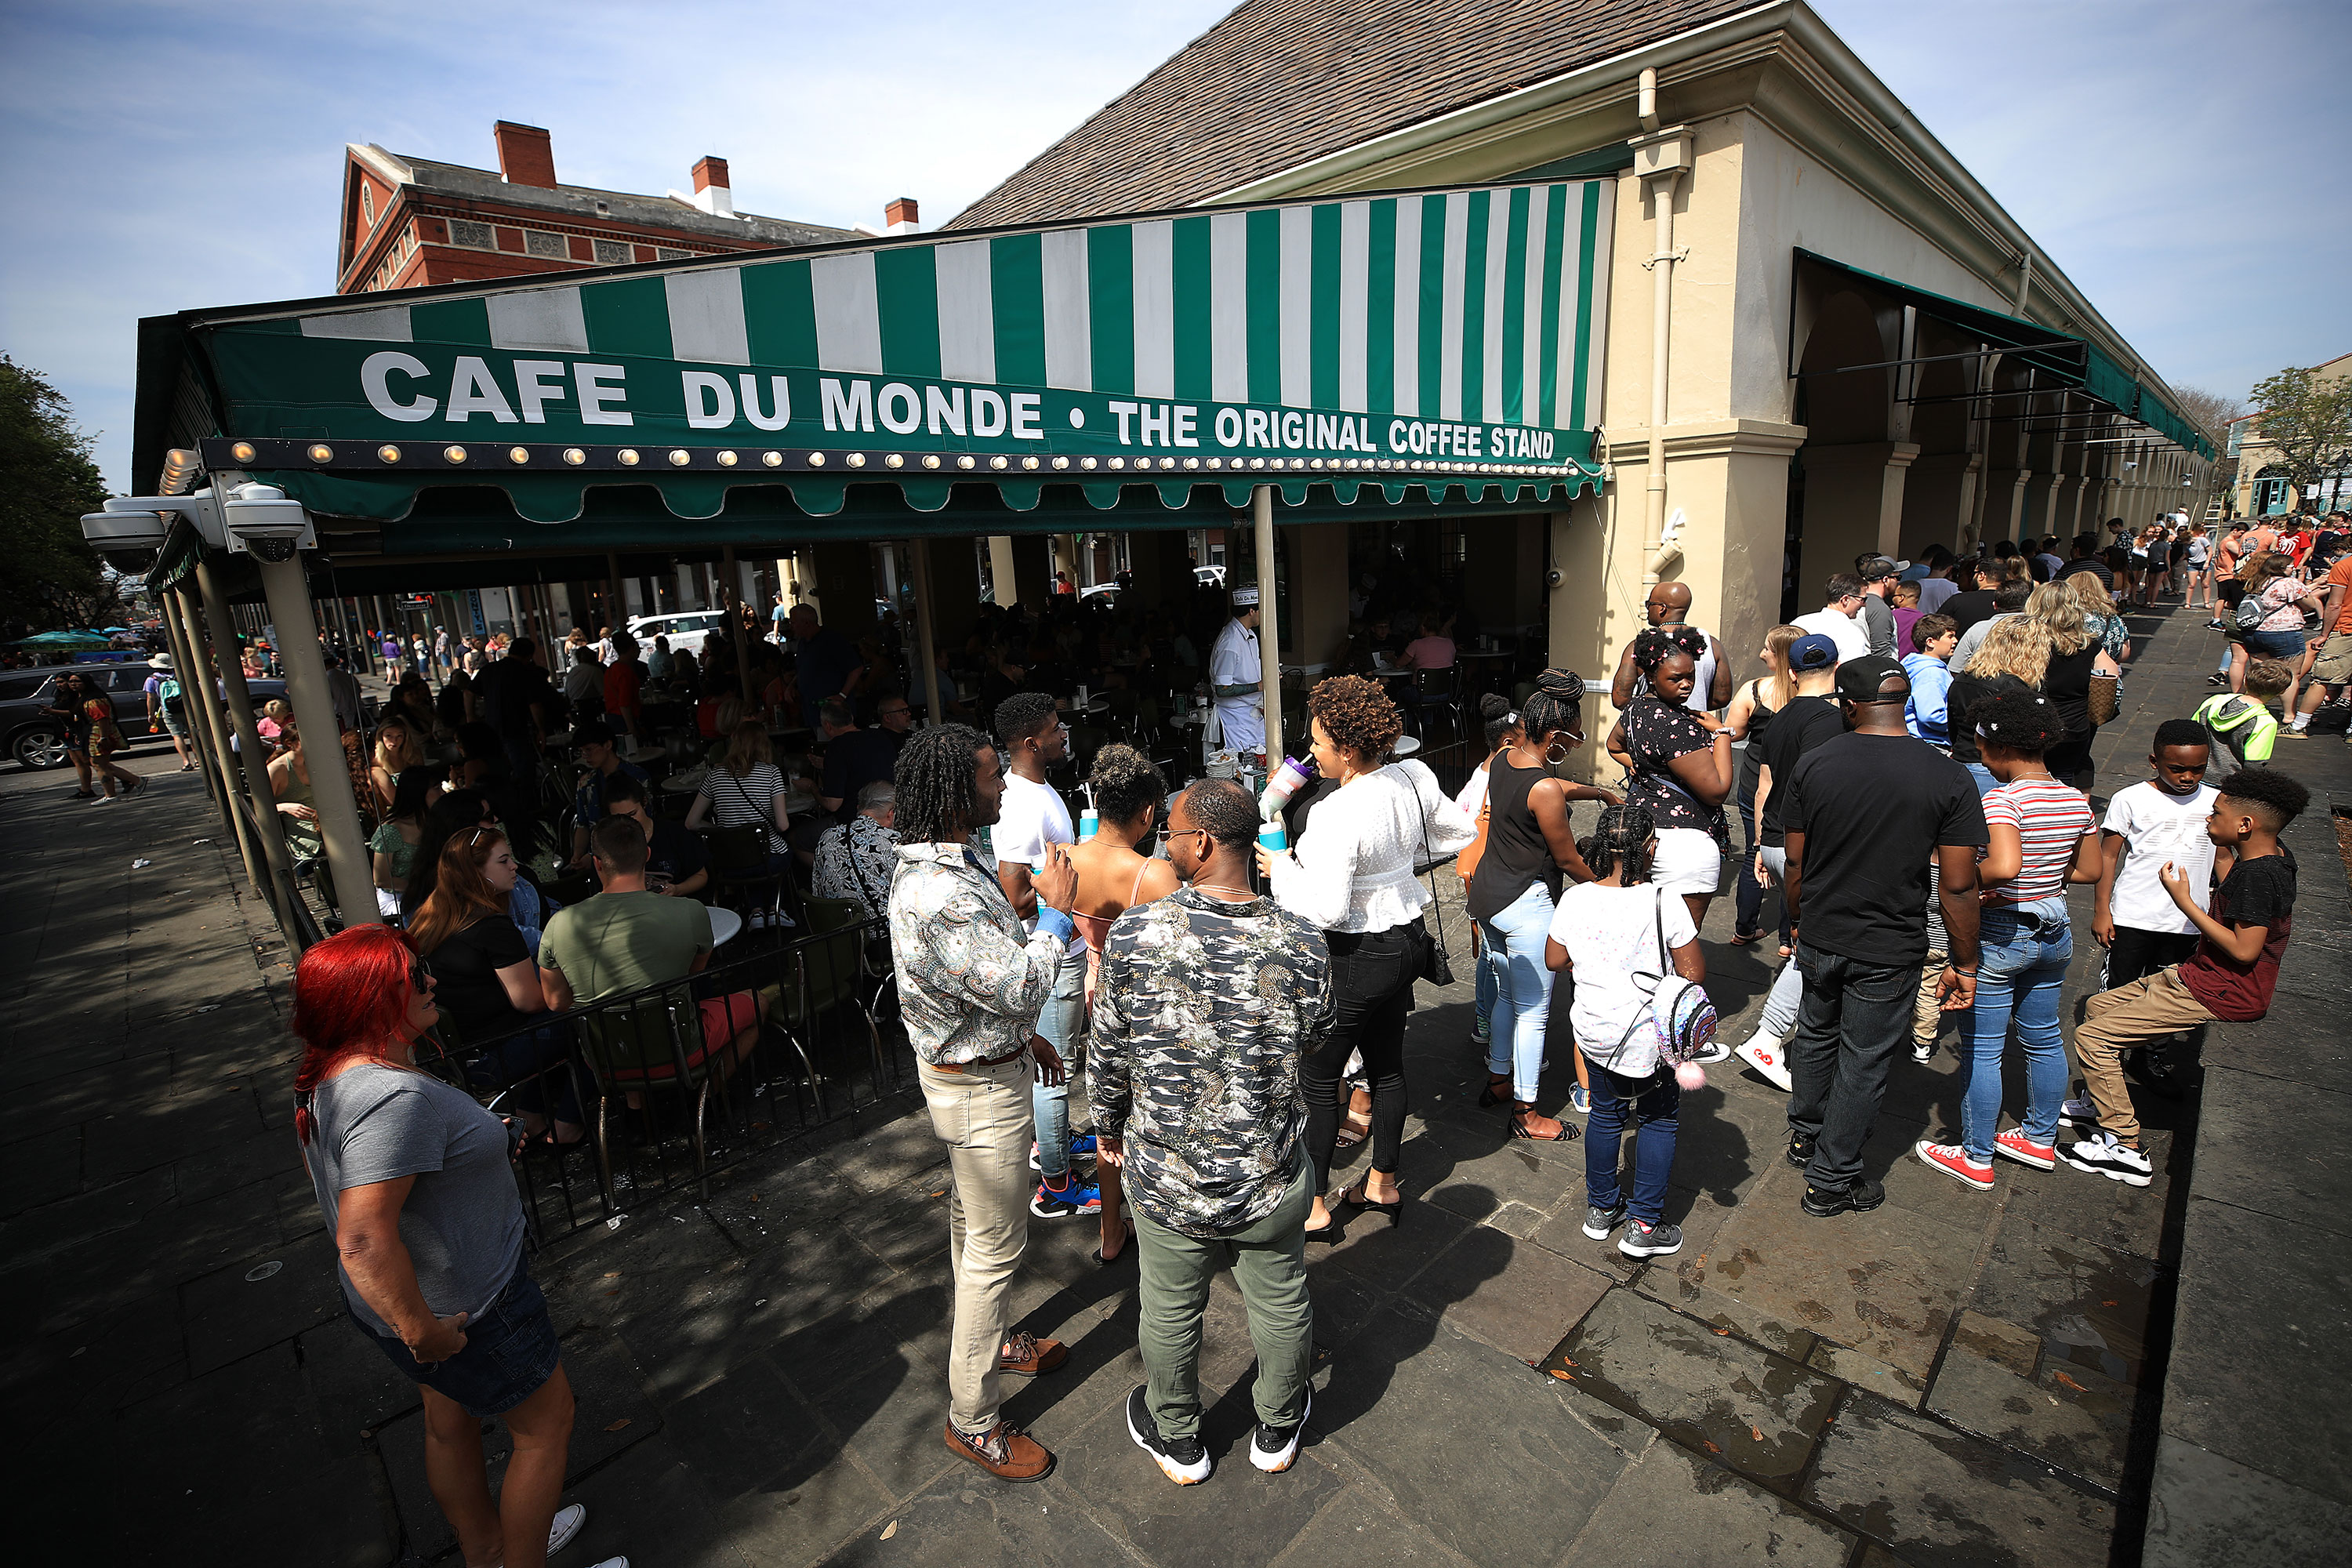 People wait in line outside the renowned Cafe Du Monde in the French Quarter of New Orleans on Sunday.